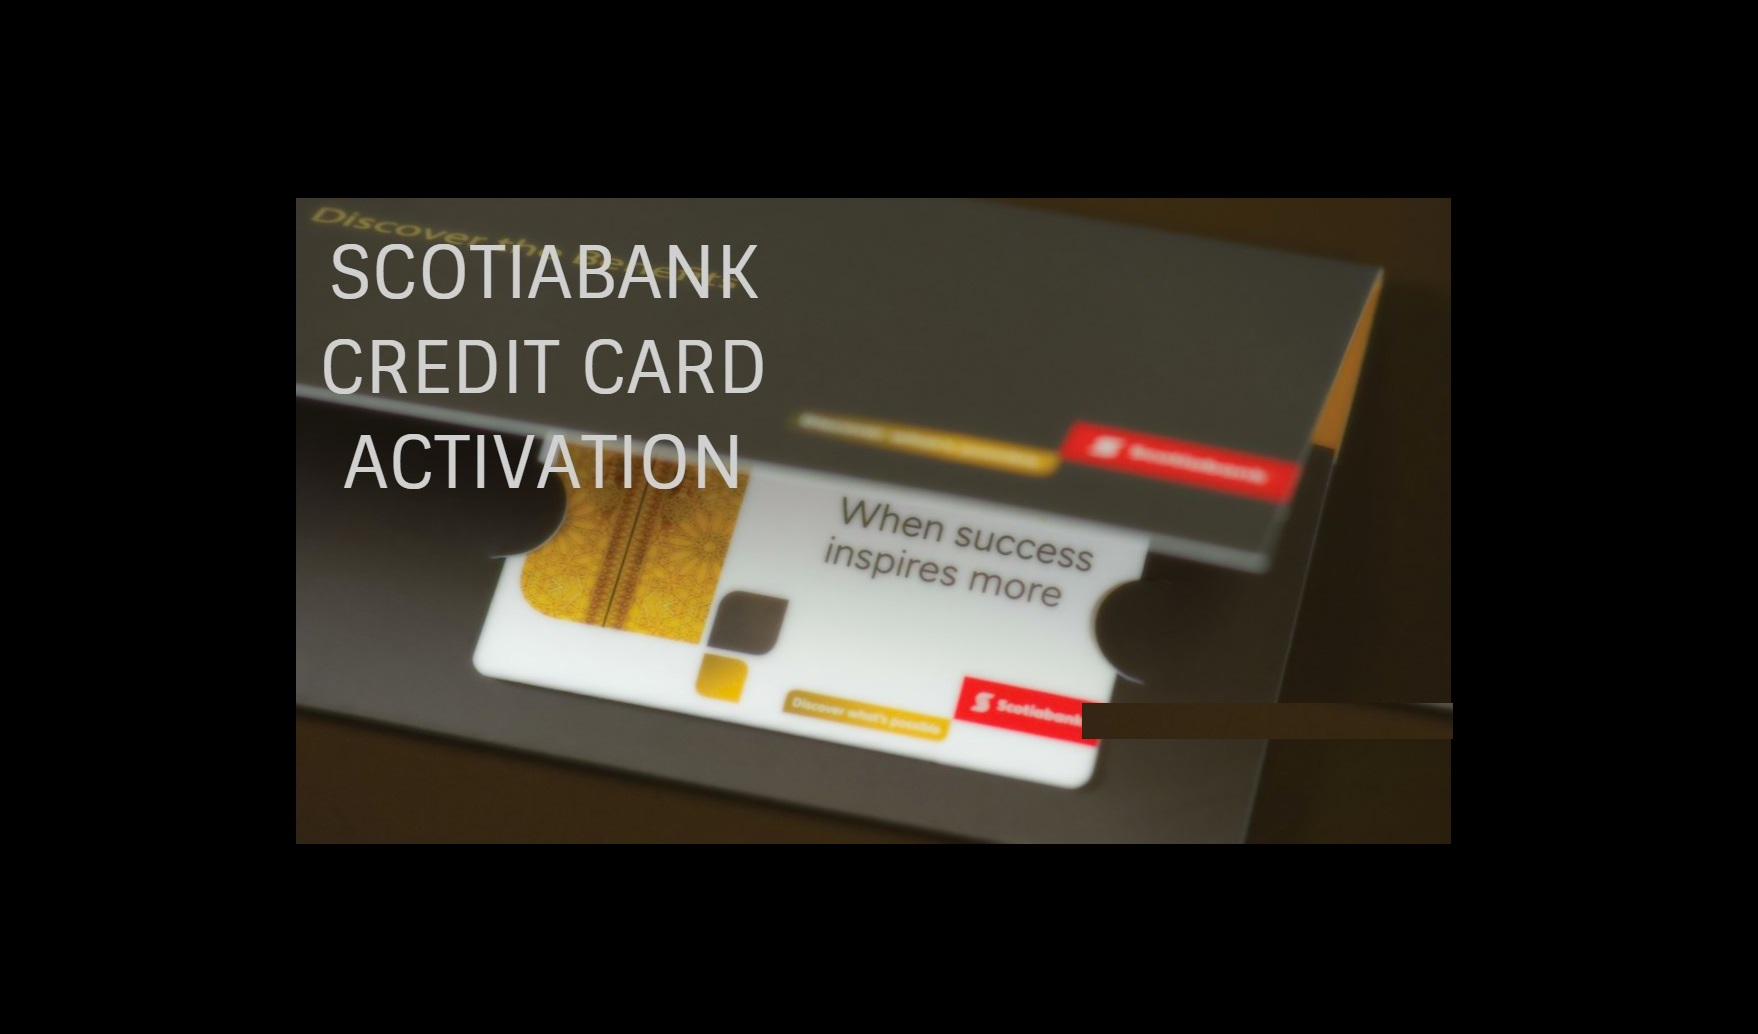 Scotiabank-Card-Activation-1